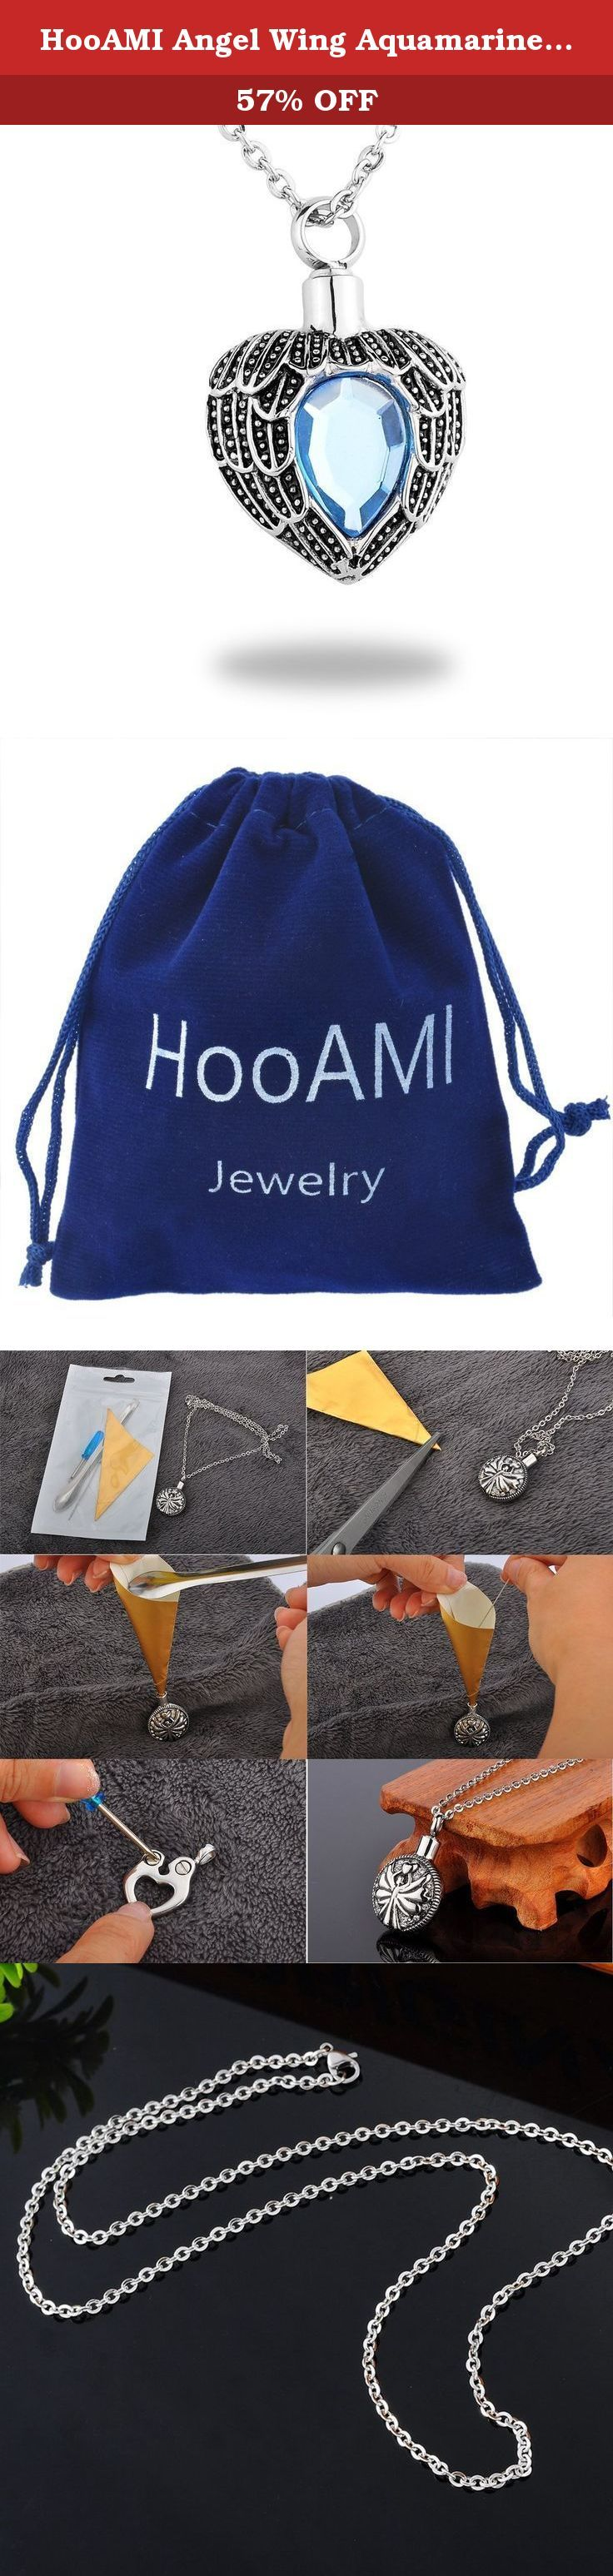 """HooAMI Angel Wing Aquamarine Birthstone Memorial Urn Pendant Necklace Stainless Steel Cremation Jewelry. Description *100% brand new item and high quality. *Impressive craftsmanship,product quality guarantee. *Reasonable price,safty sale and delivery management. *Including one blue velvet bag printed """"HooAMI"""" on it,suitable as a gift! Features Stainless Steel Jewellery *Green high-grade green jewelry - it is completely not produce any side effects on the human body. *Never fade or tarnish…"""